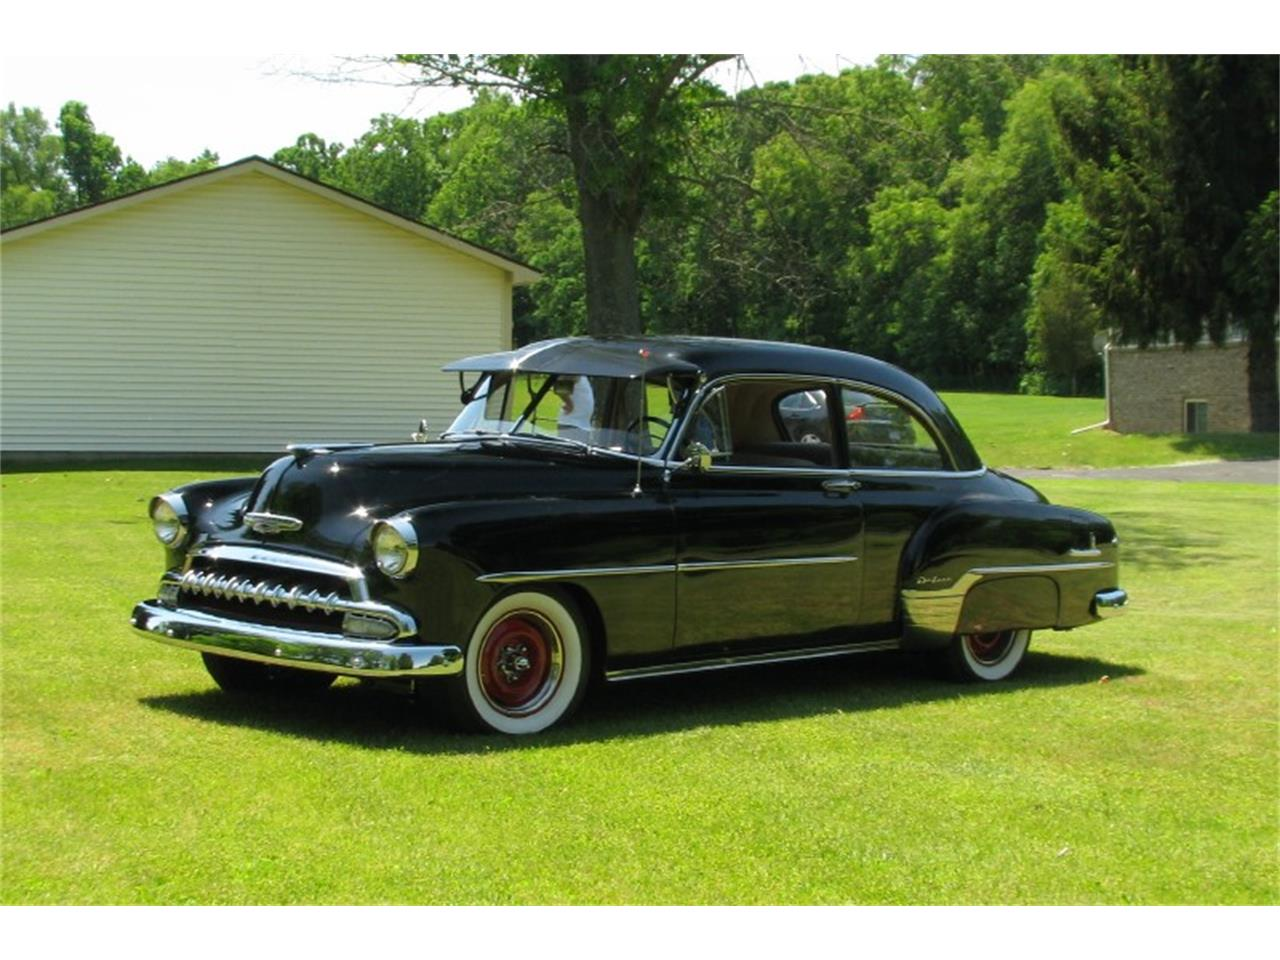 Large Picture of '52 Chevrolet Deluxe Business Coupe located in Michigan Offered by Sleeman's Classic Cars - LAP4